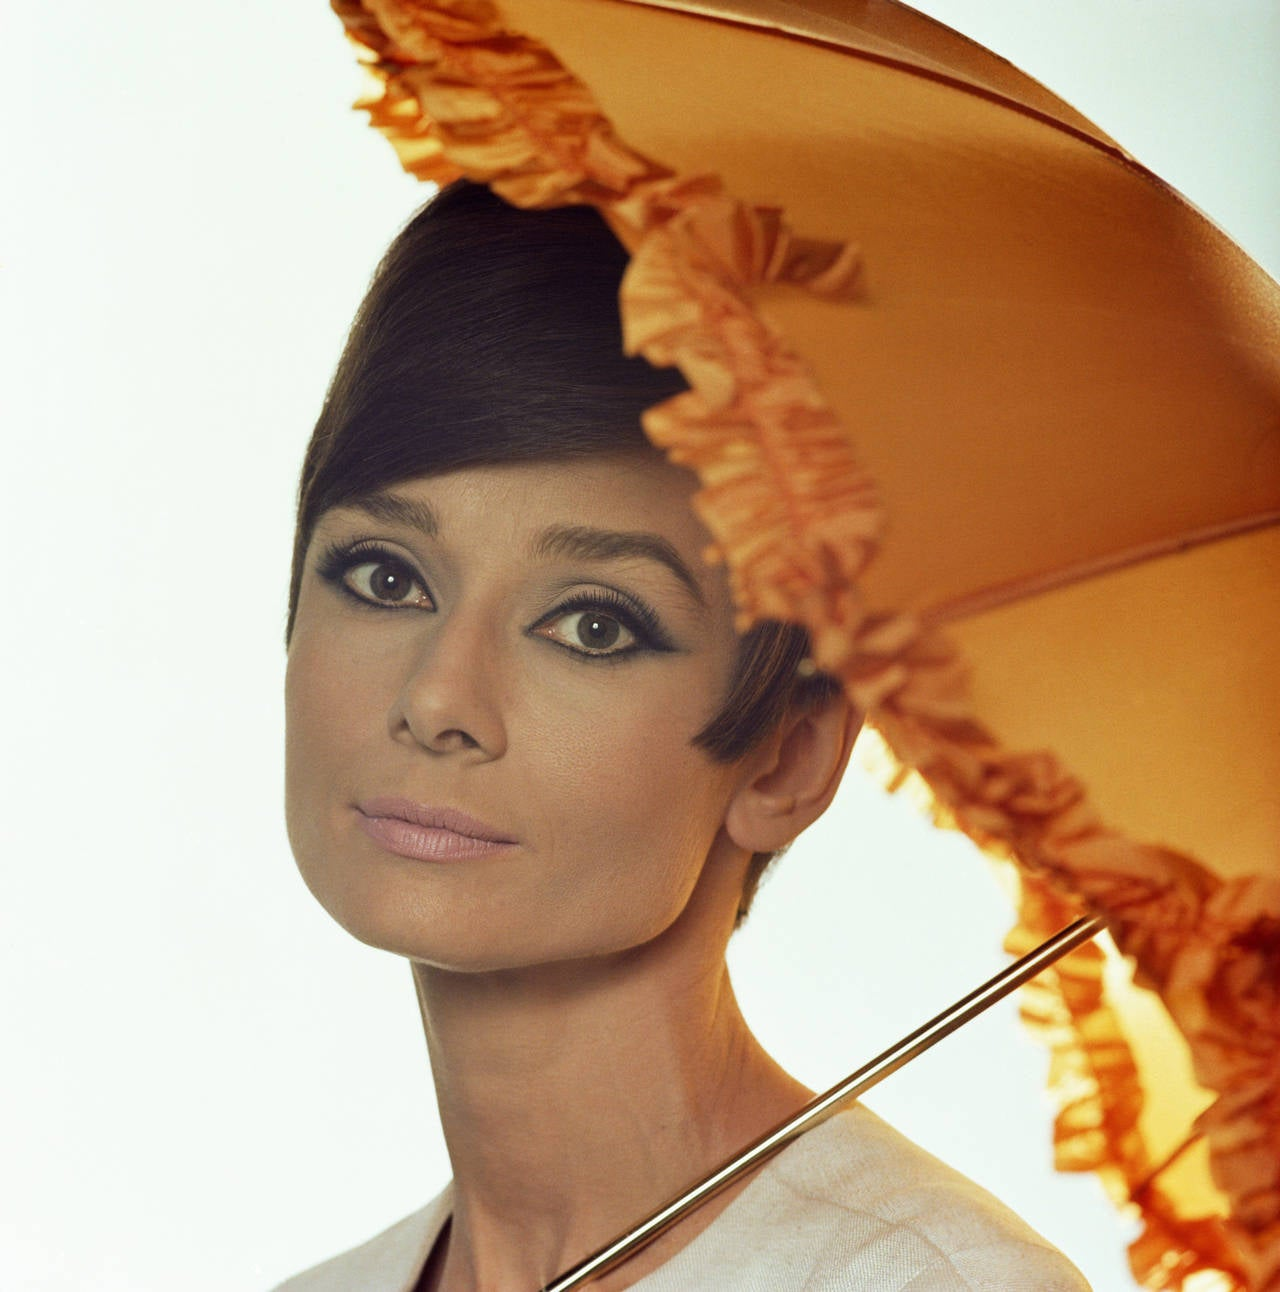 Unknown Audrey Hepburn Fine Art Print Photograph For Sale At 1stdibs